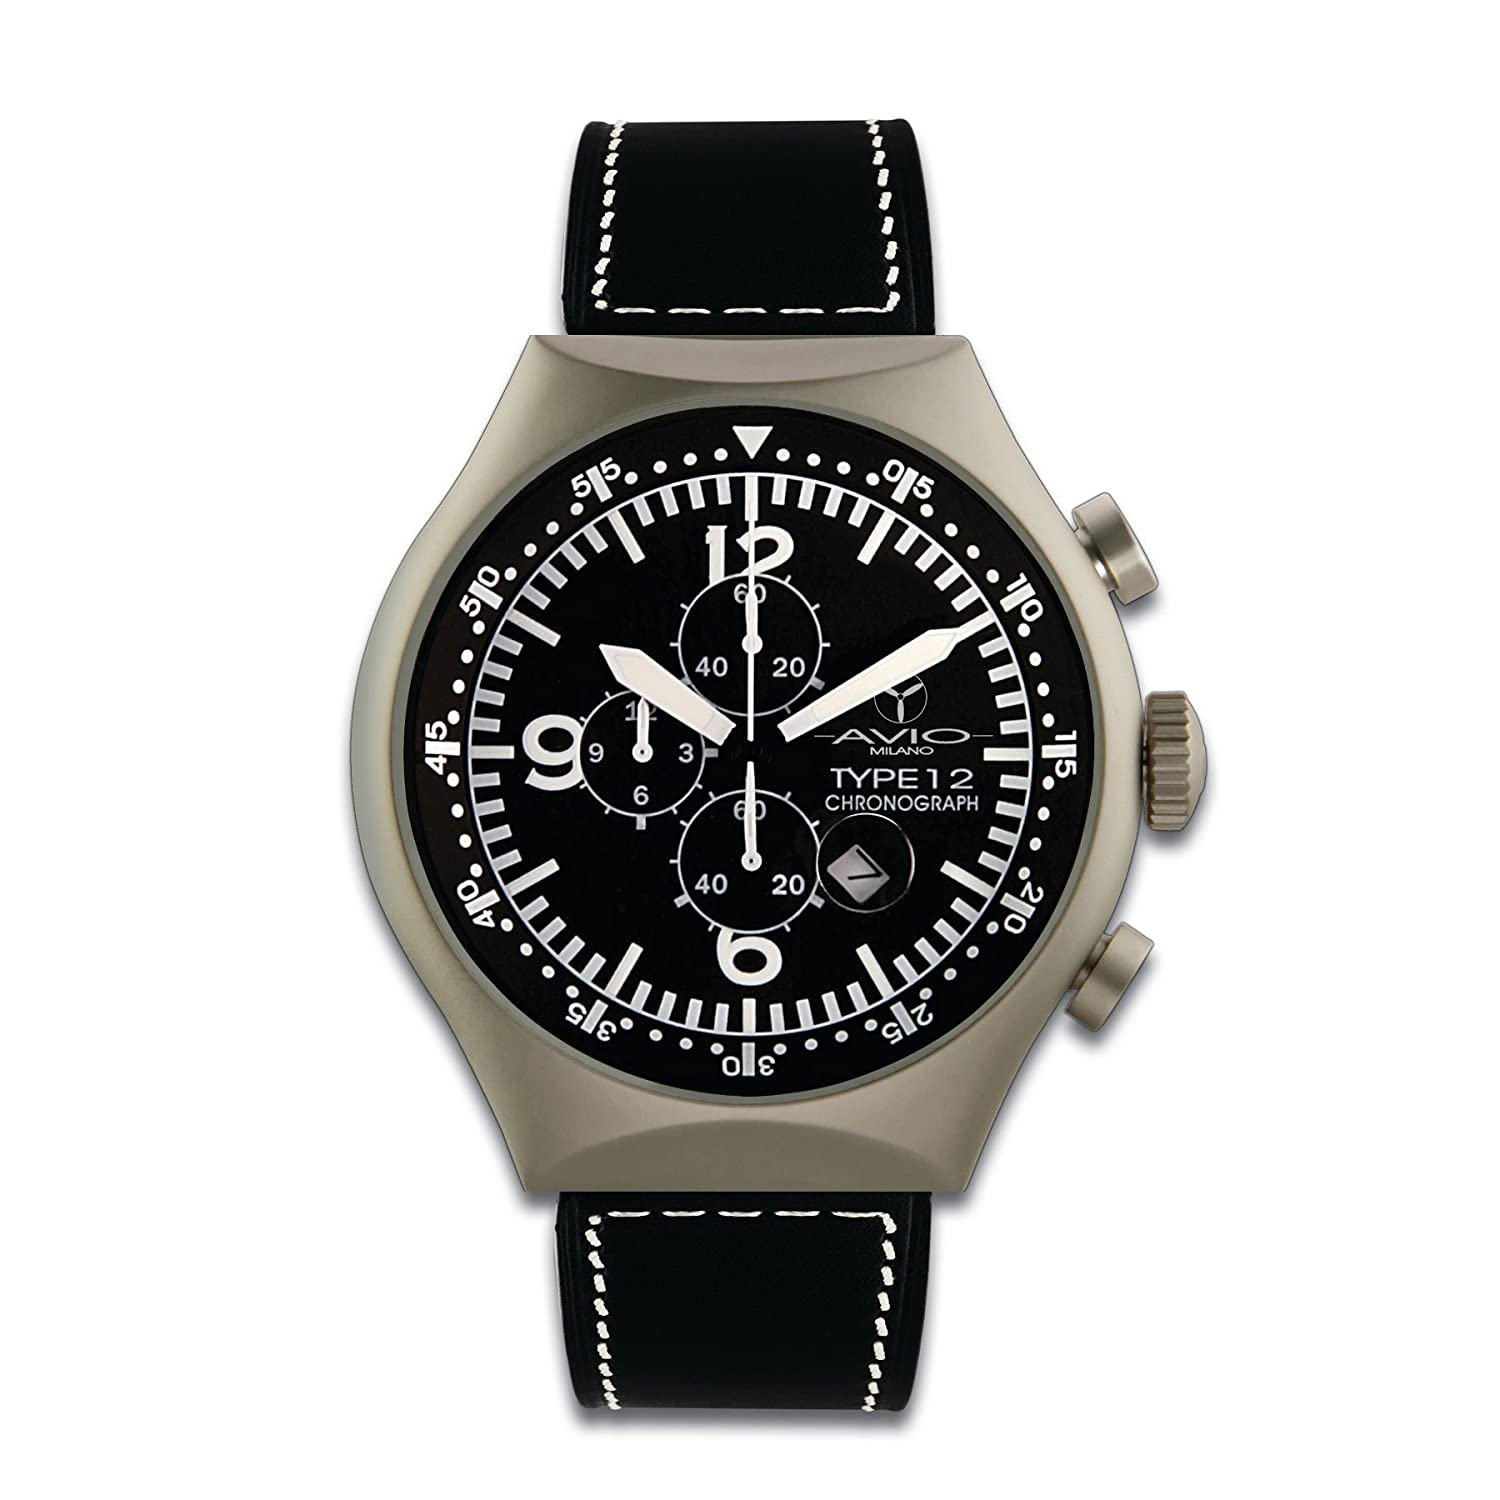 Avio Milano 50 MM TYPE G Armbanduhr - 50 MM TYPE G